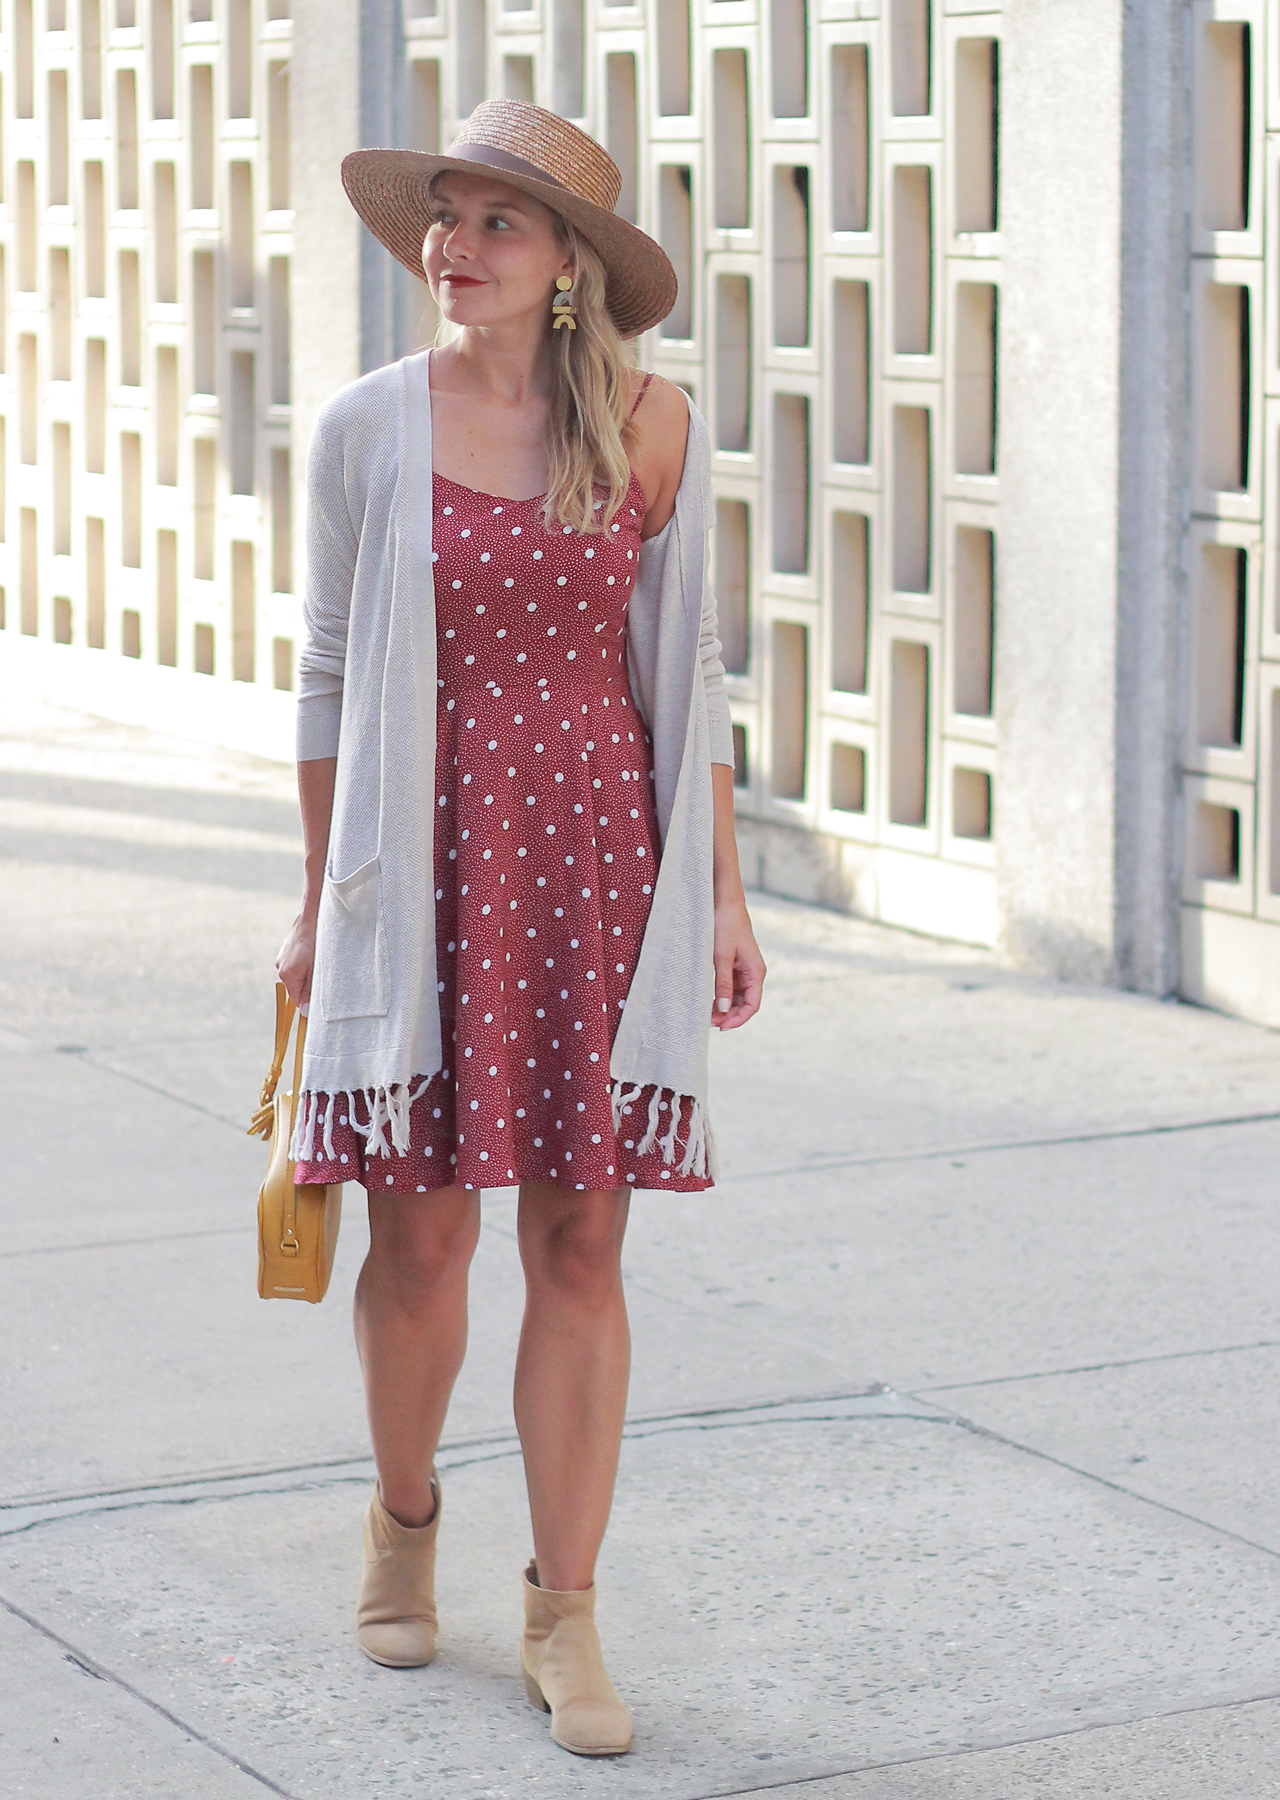 The Steele Maiden: Summer to Fall Transitional Style with Old Navy